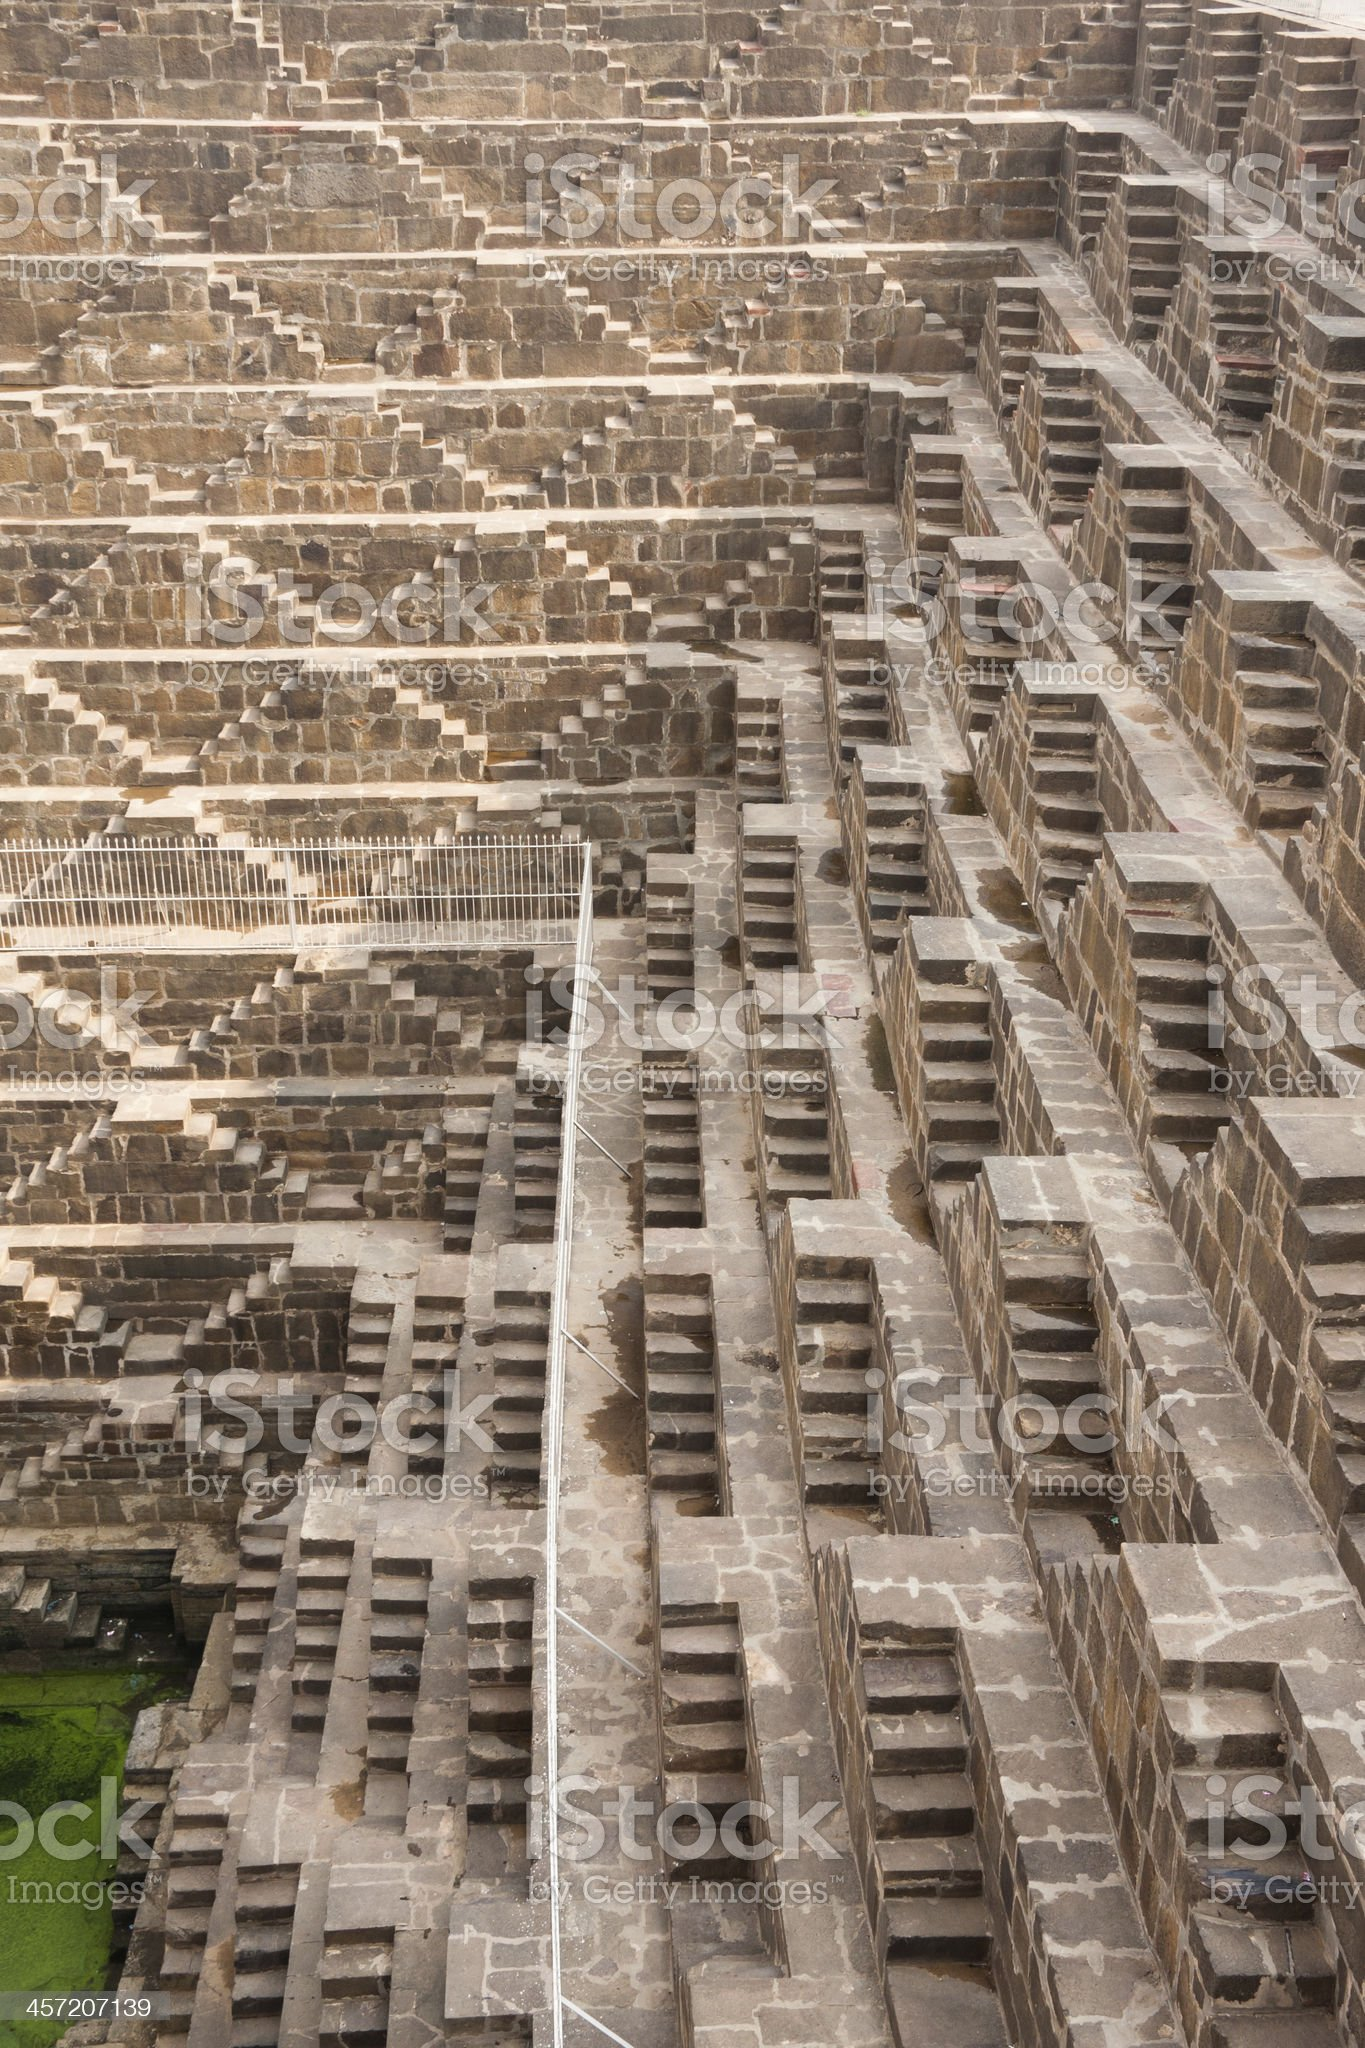 Step Well near Jaipur in Rajasthan state, India. royalty-free stock photo